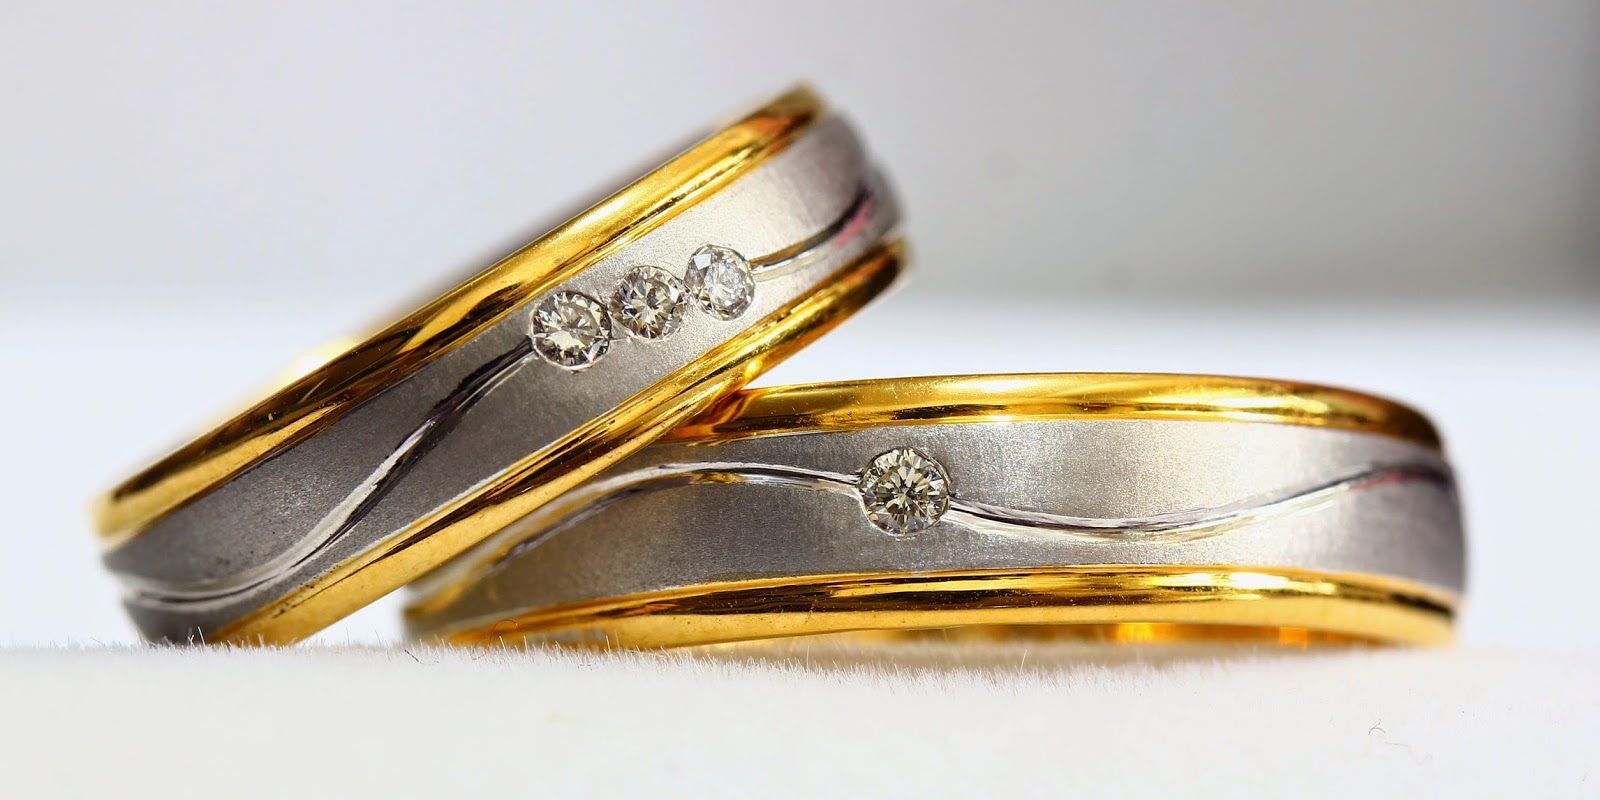 Their Work Is Absolutely Stunning: Shop For Wedding Rings At Reisefeber.org